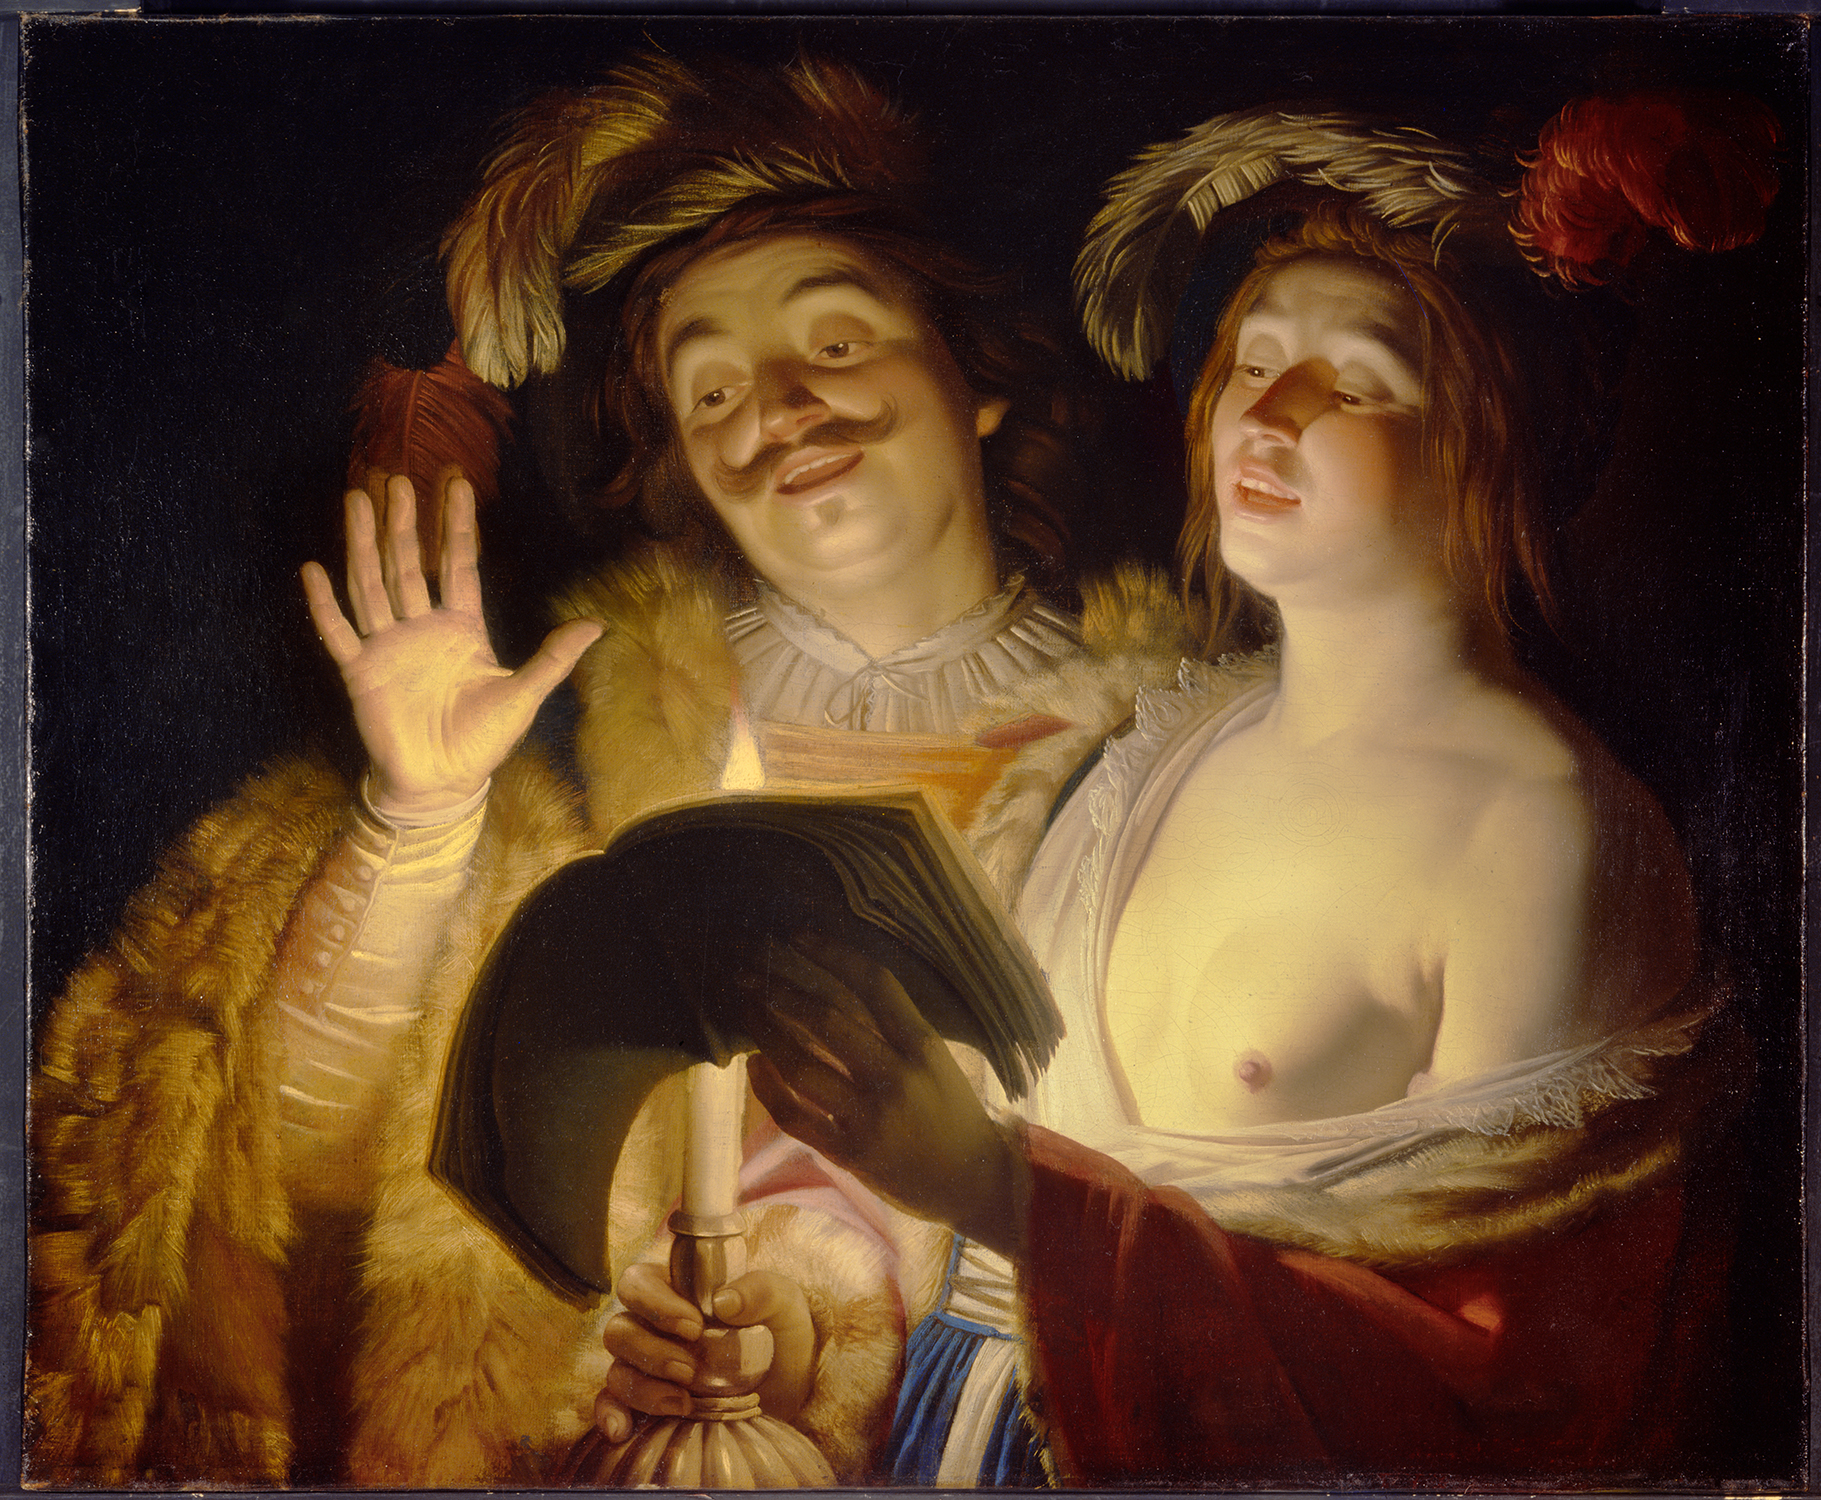 in 2013, the Montreal Museum of Fine Arts returned The Duet by Gerrit van Honthorst to the original owner's family (Courtesy of MBAM)